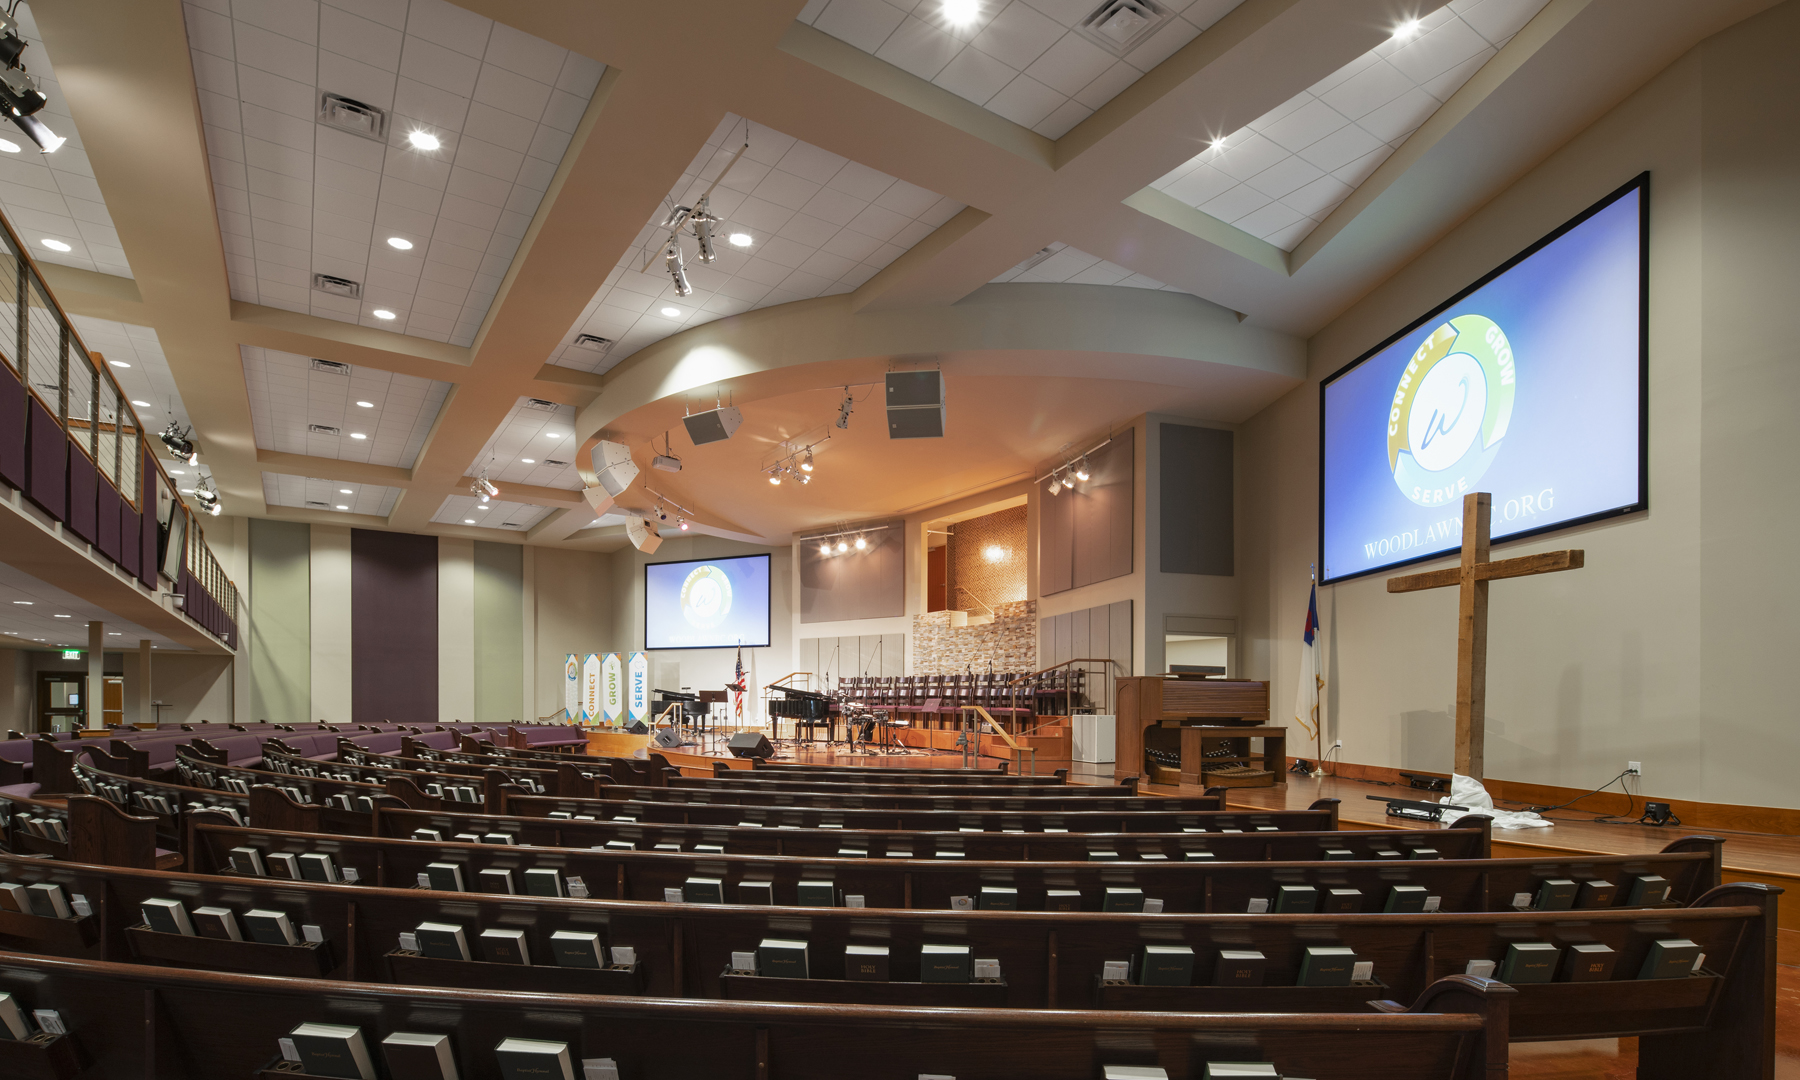 Woodlawn Baptist Church Sanctuary Curved Seating, Austin, TX, Heimsath Architects Church Design Specialists